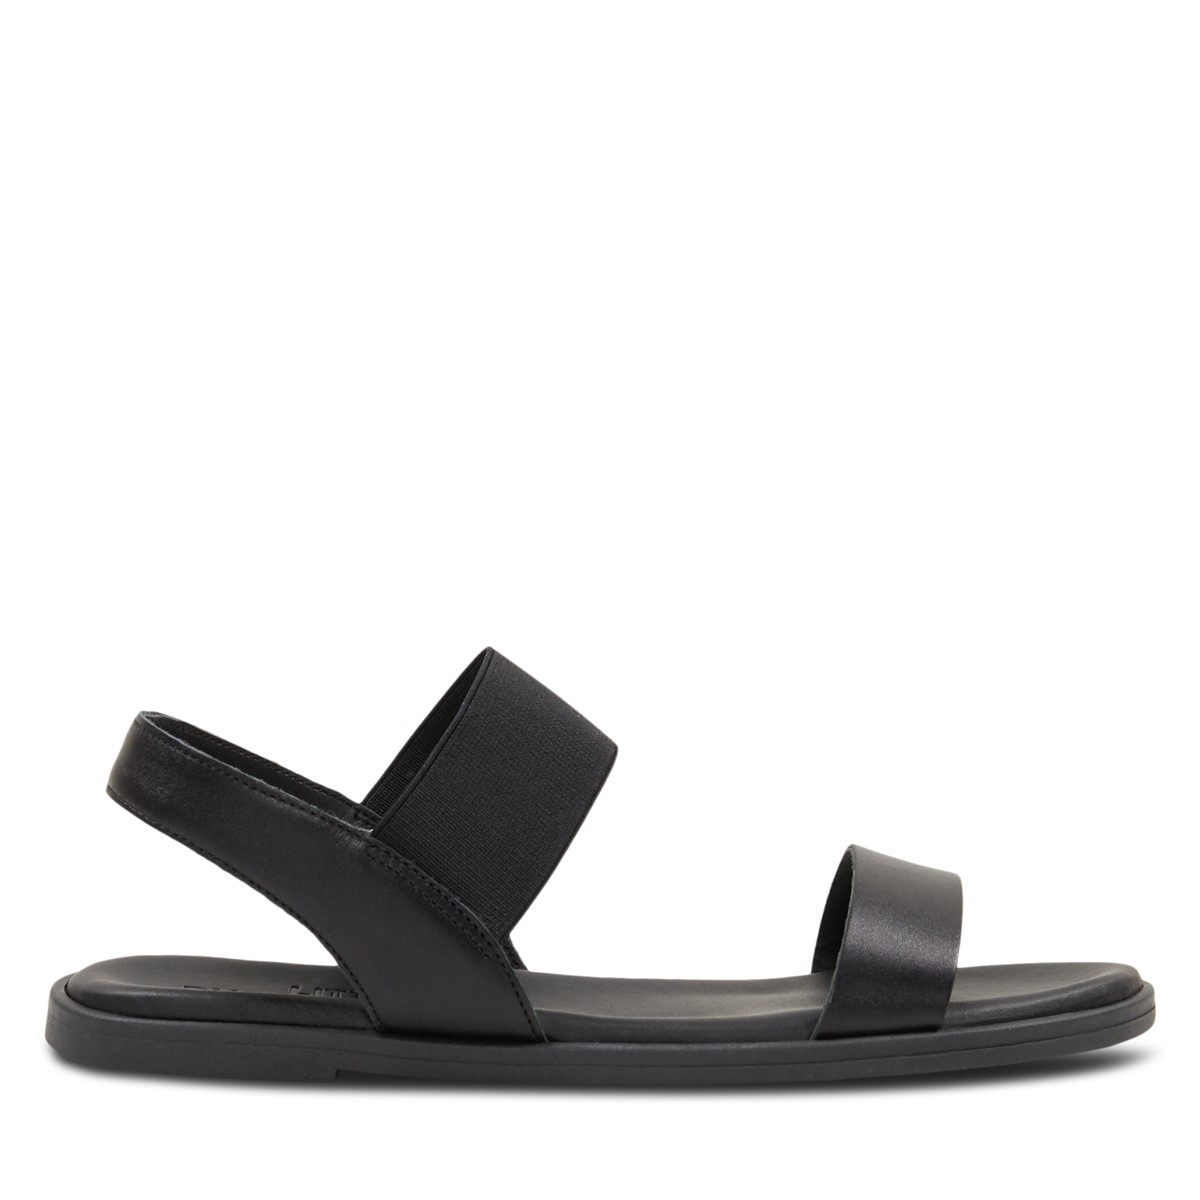 Women's Annie Strapped Sandals in Black